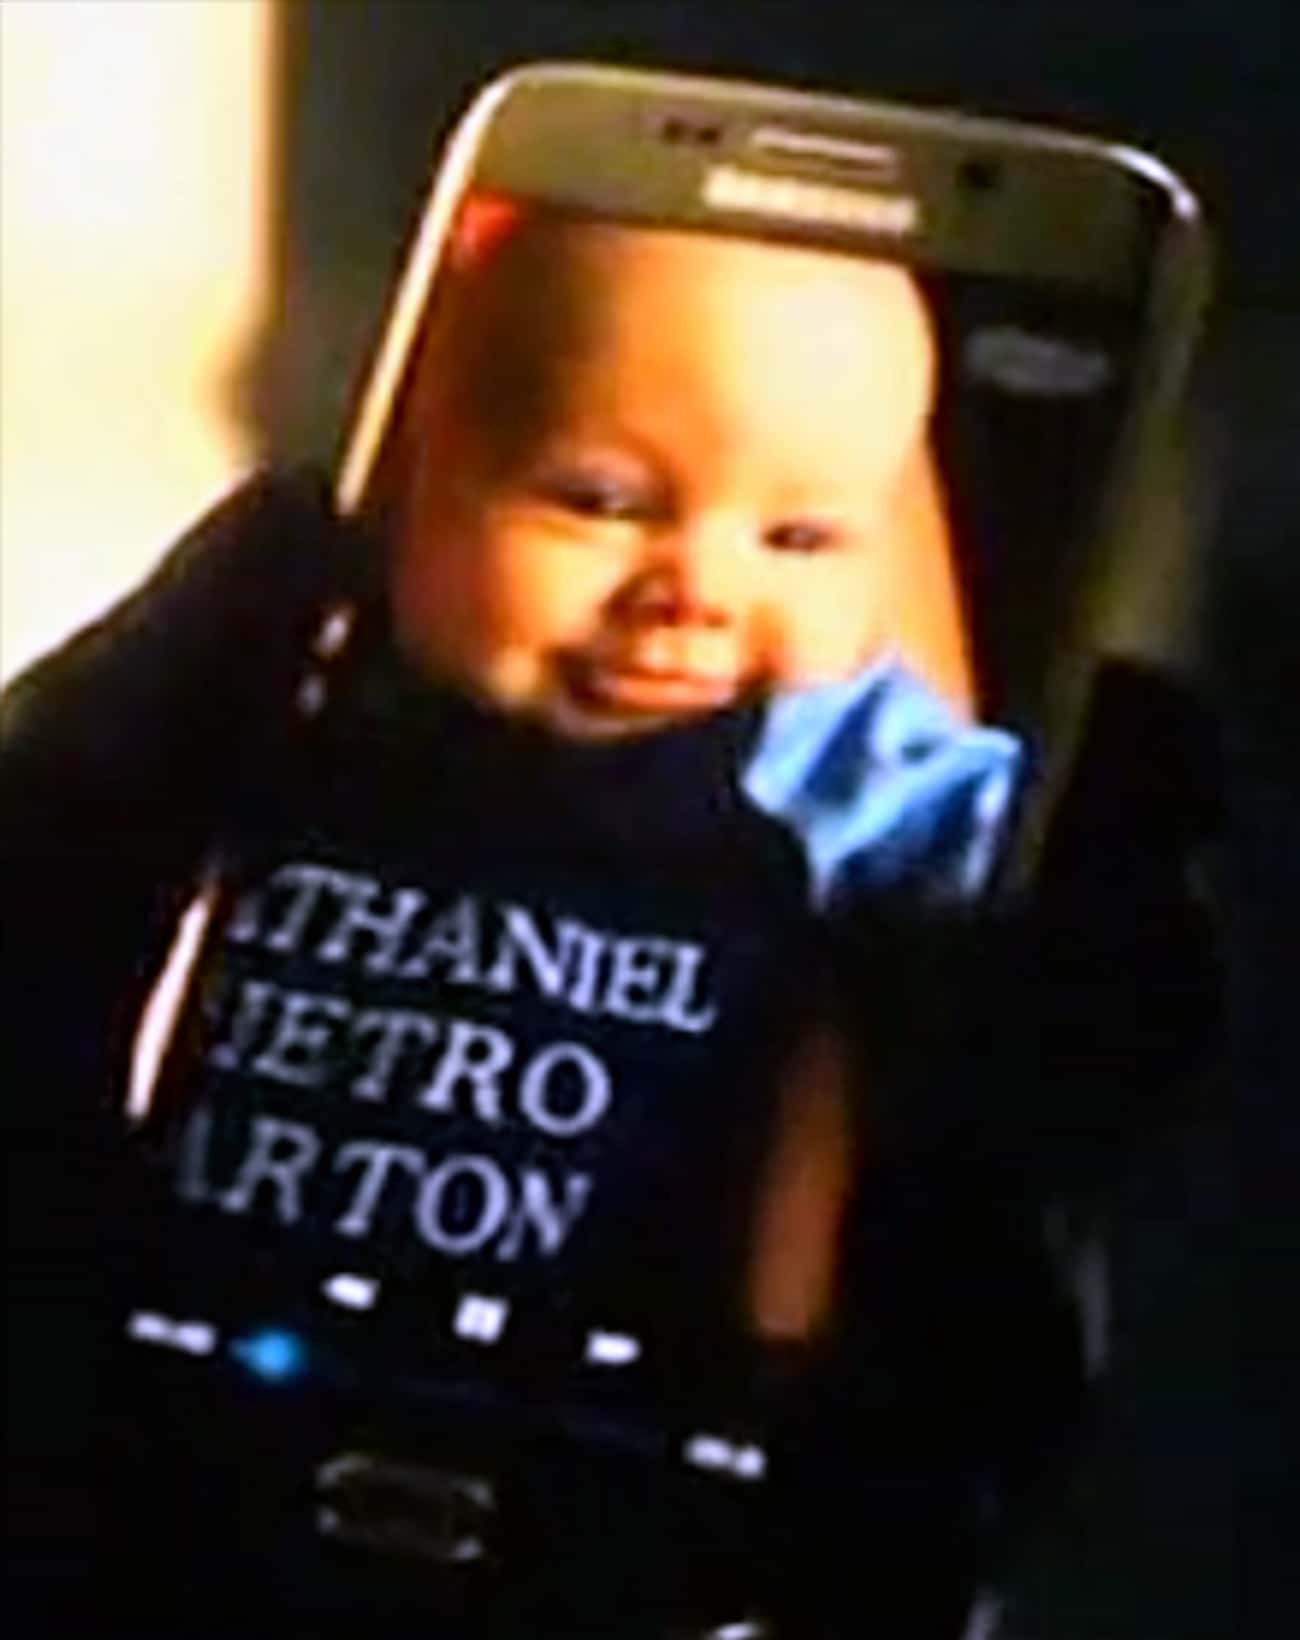 Nathaniel Pietro Barton- Aveng is listed (or ranked) 3 on the list Easter Eggs From Every Marvel Movie